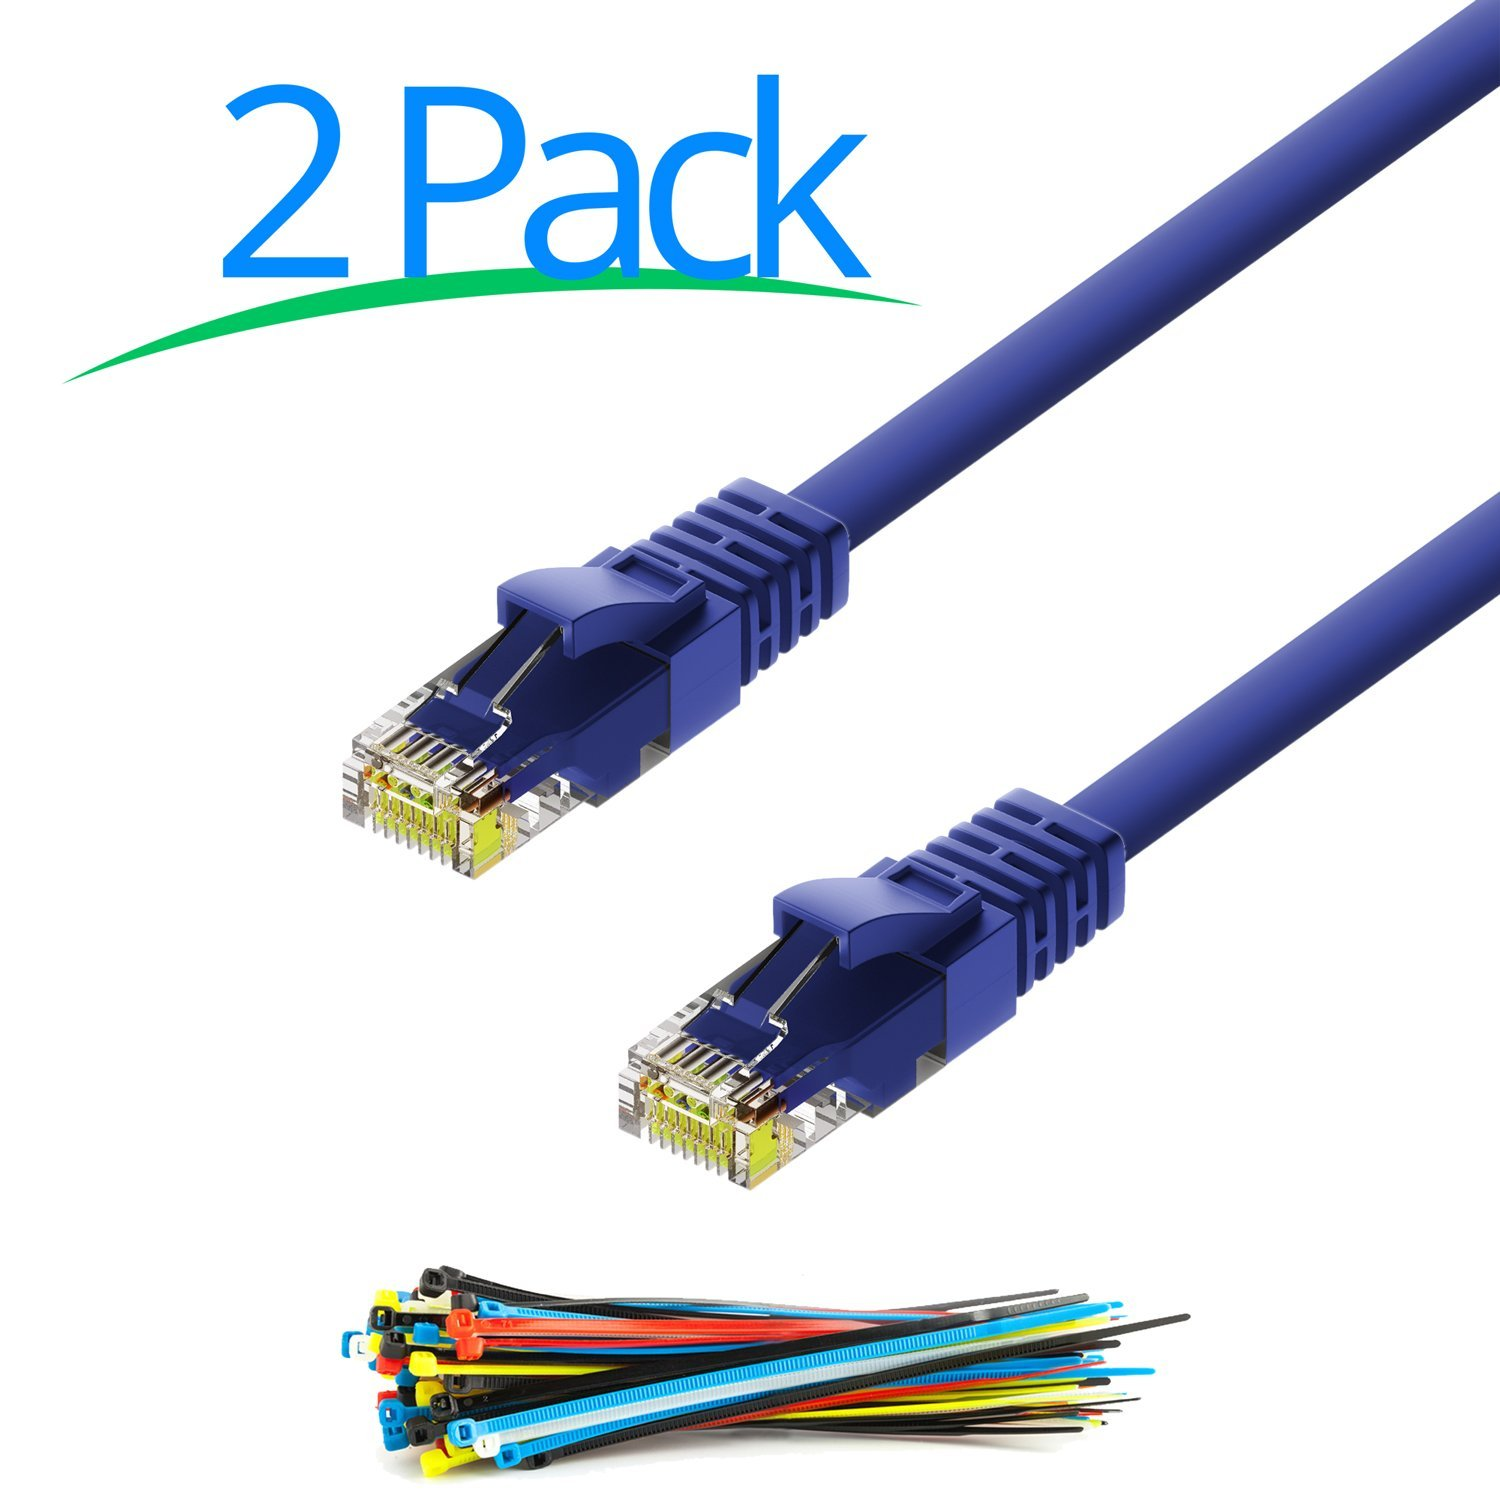 Cat6 Ethernet Cable  1 Foot Cord - 2 Pack - Internet RJ45 Gigabit Cat6e Lan Cable With Snagless Connectors For Fast Network & Computer Networking + Cable Ties - Blue